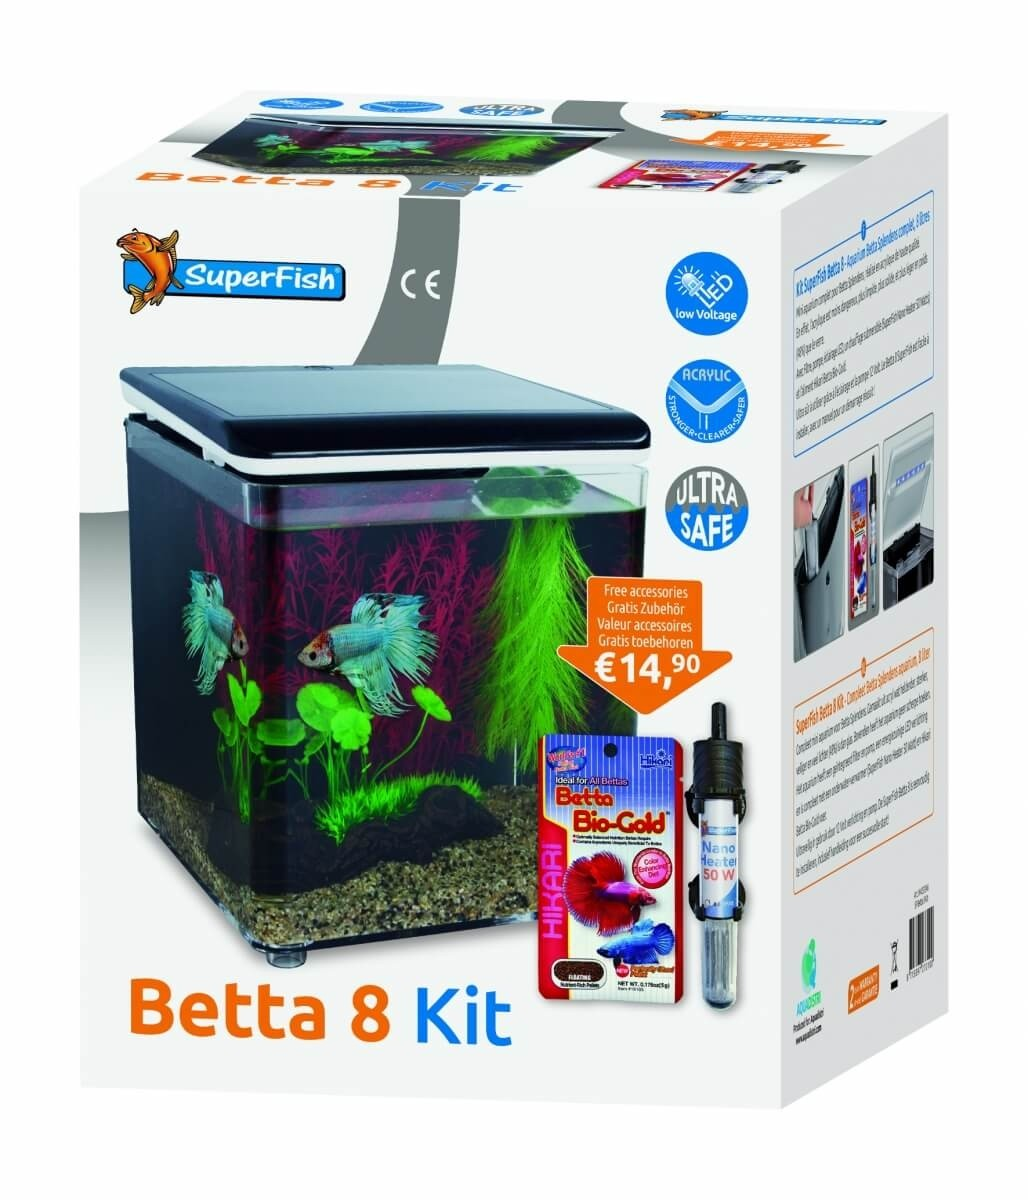 Home 8 et Betta Kit - mini aquarium acrylique_4